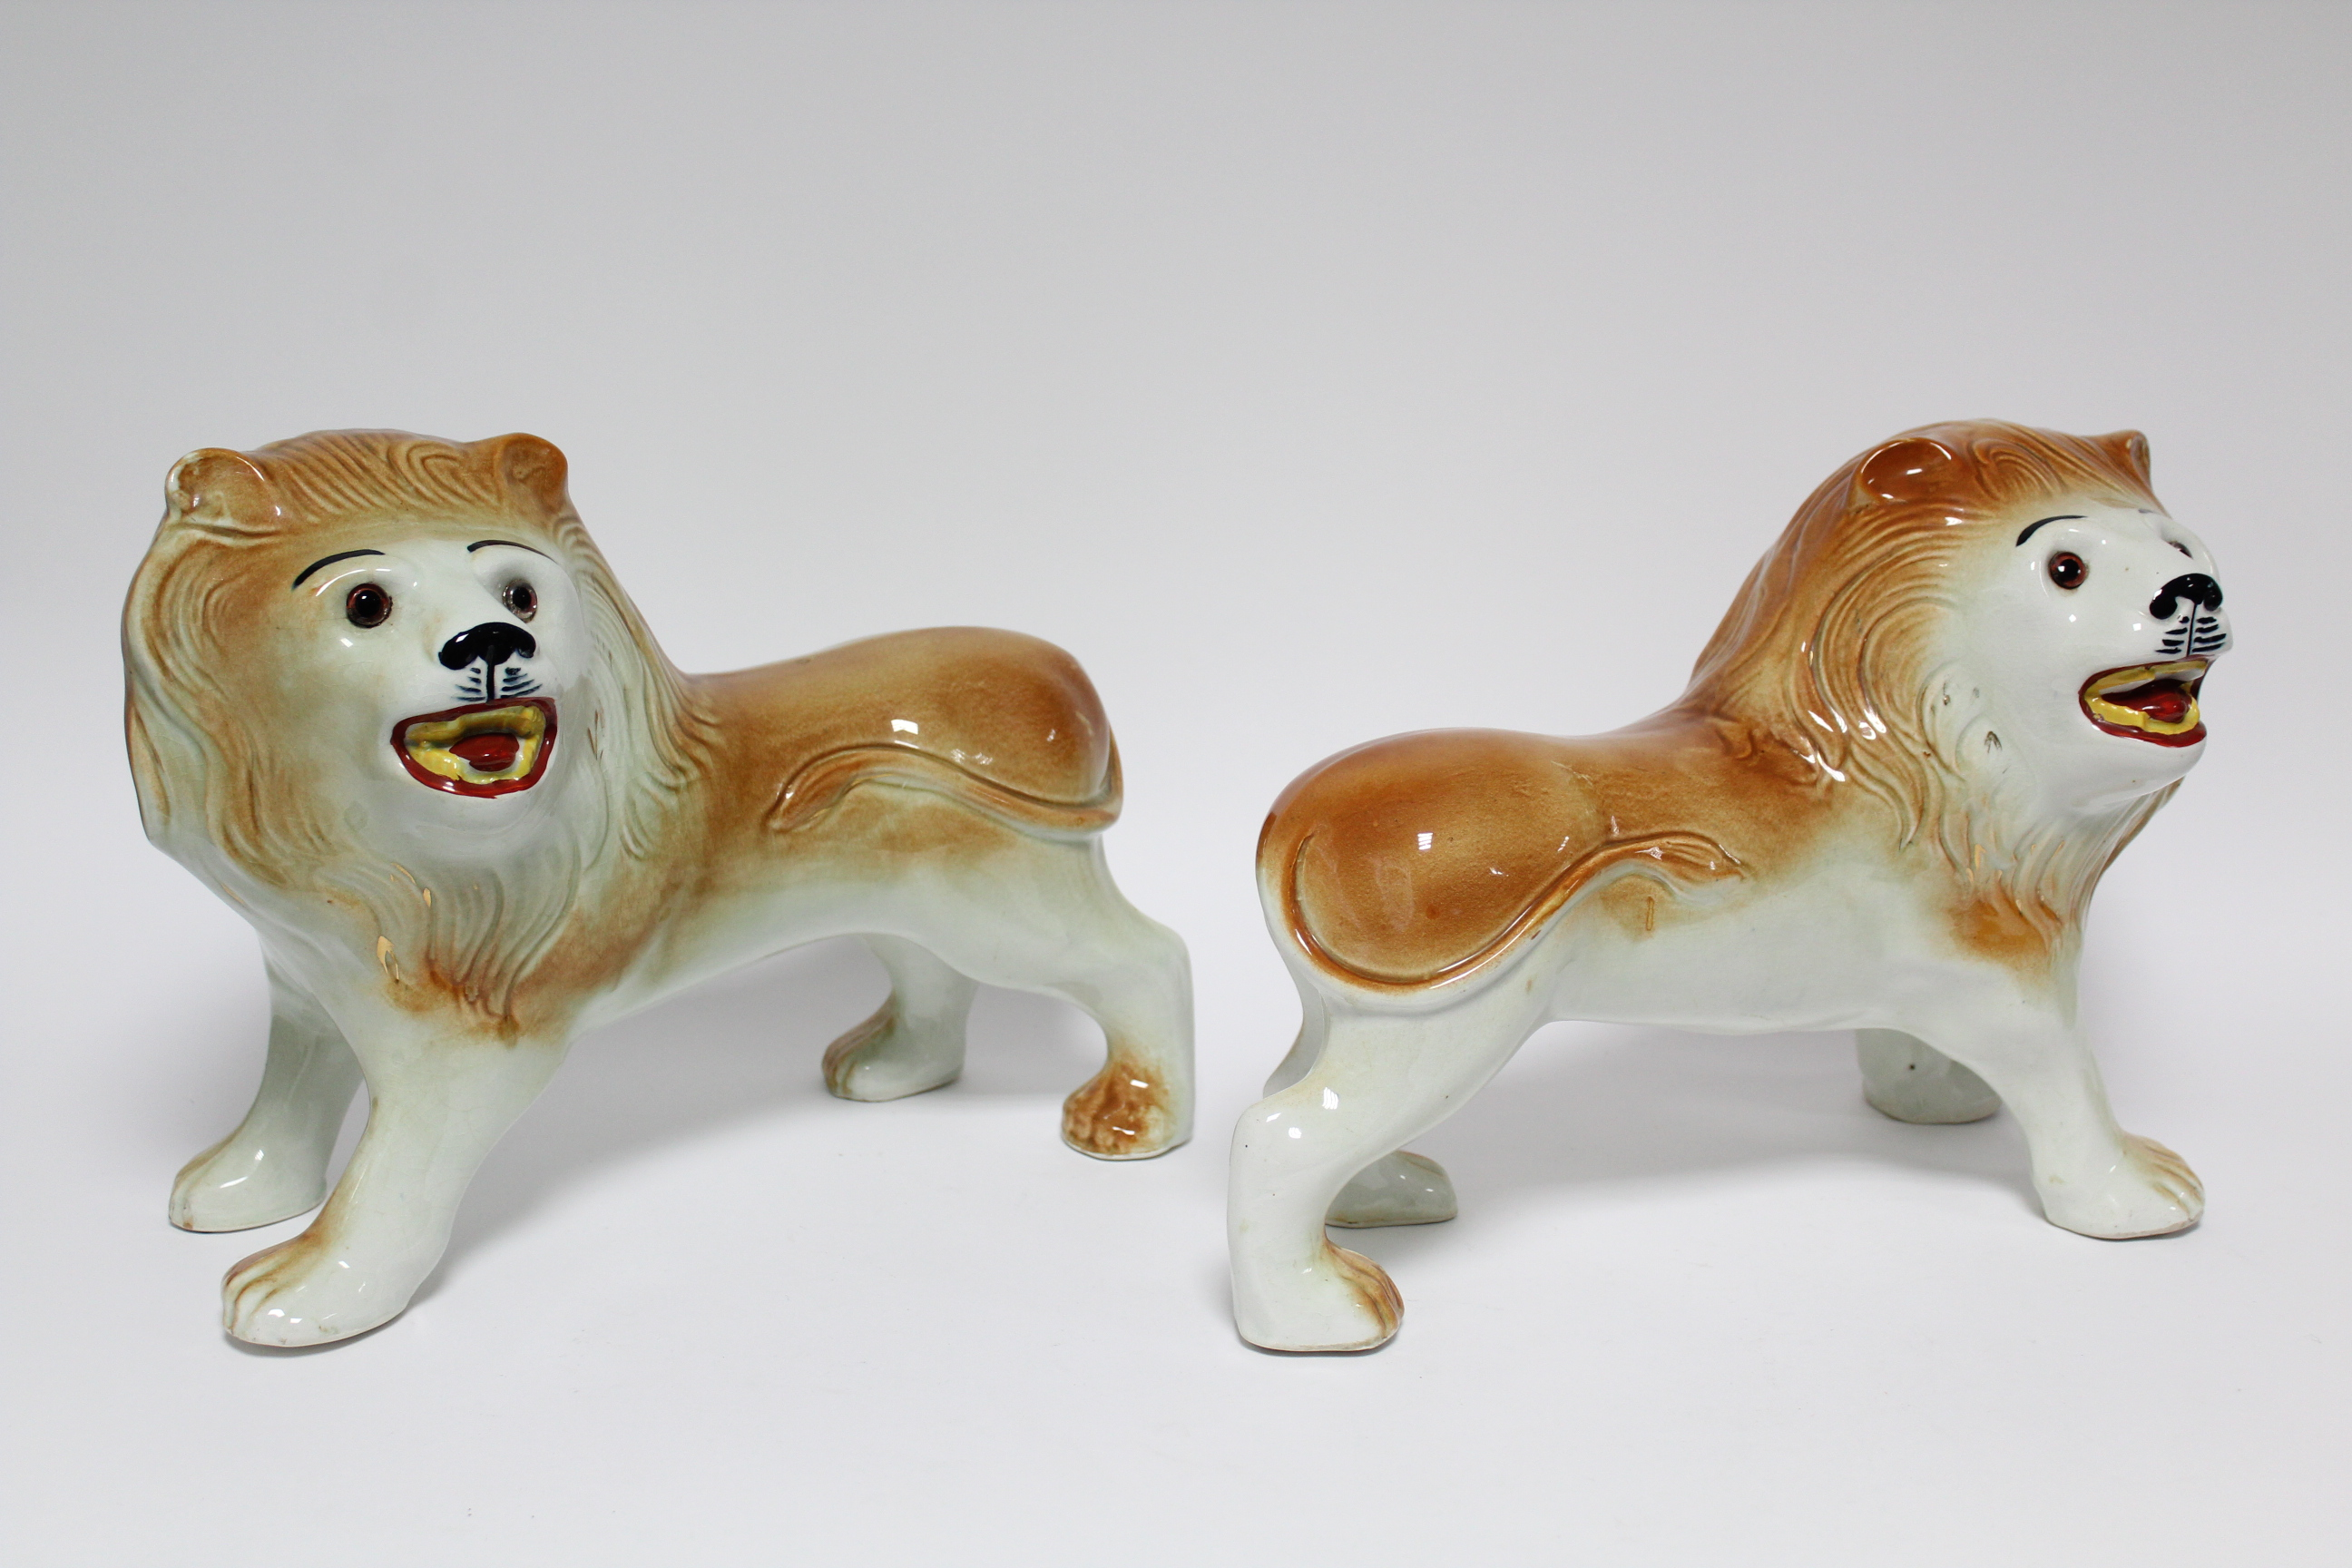 A pair of early 20th century Sadler Pottery large standing models of roaring lions with inset - Image 3 of 7